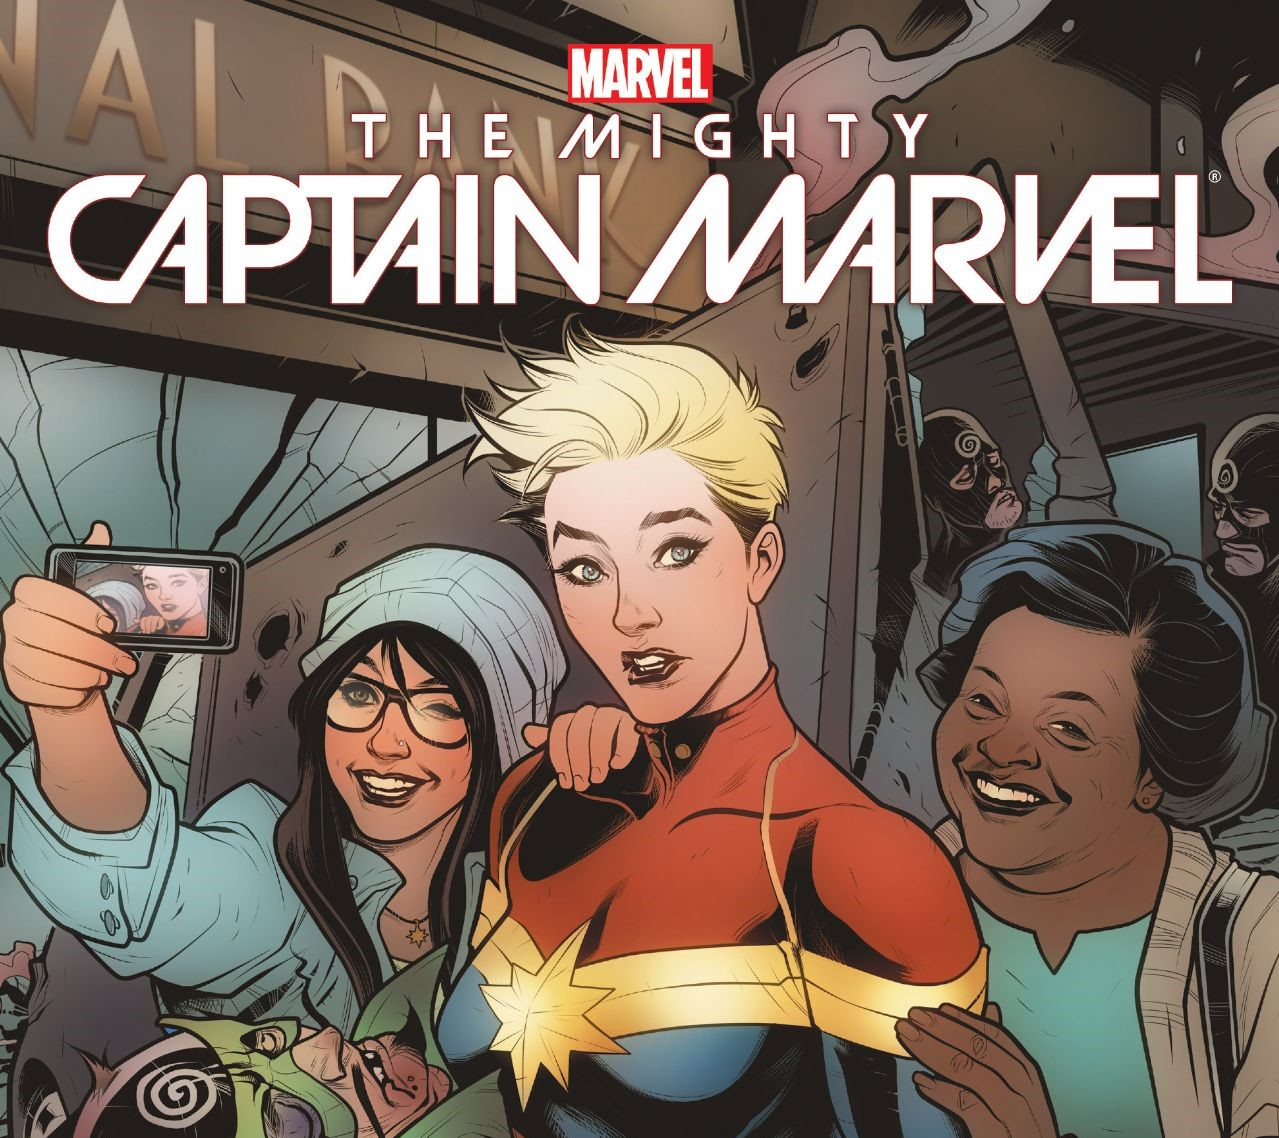 Exclusive The Mighty Captain Marvel Video Spotlight Series The Mary Sue